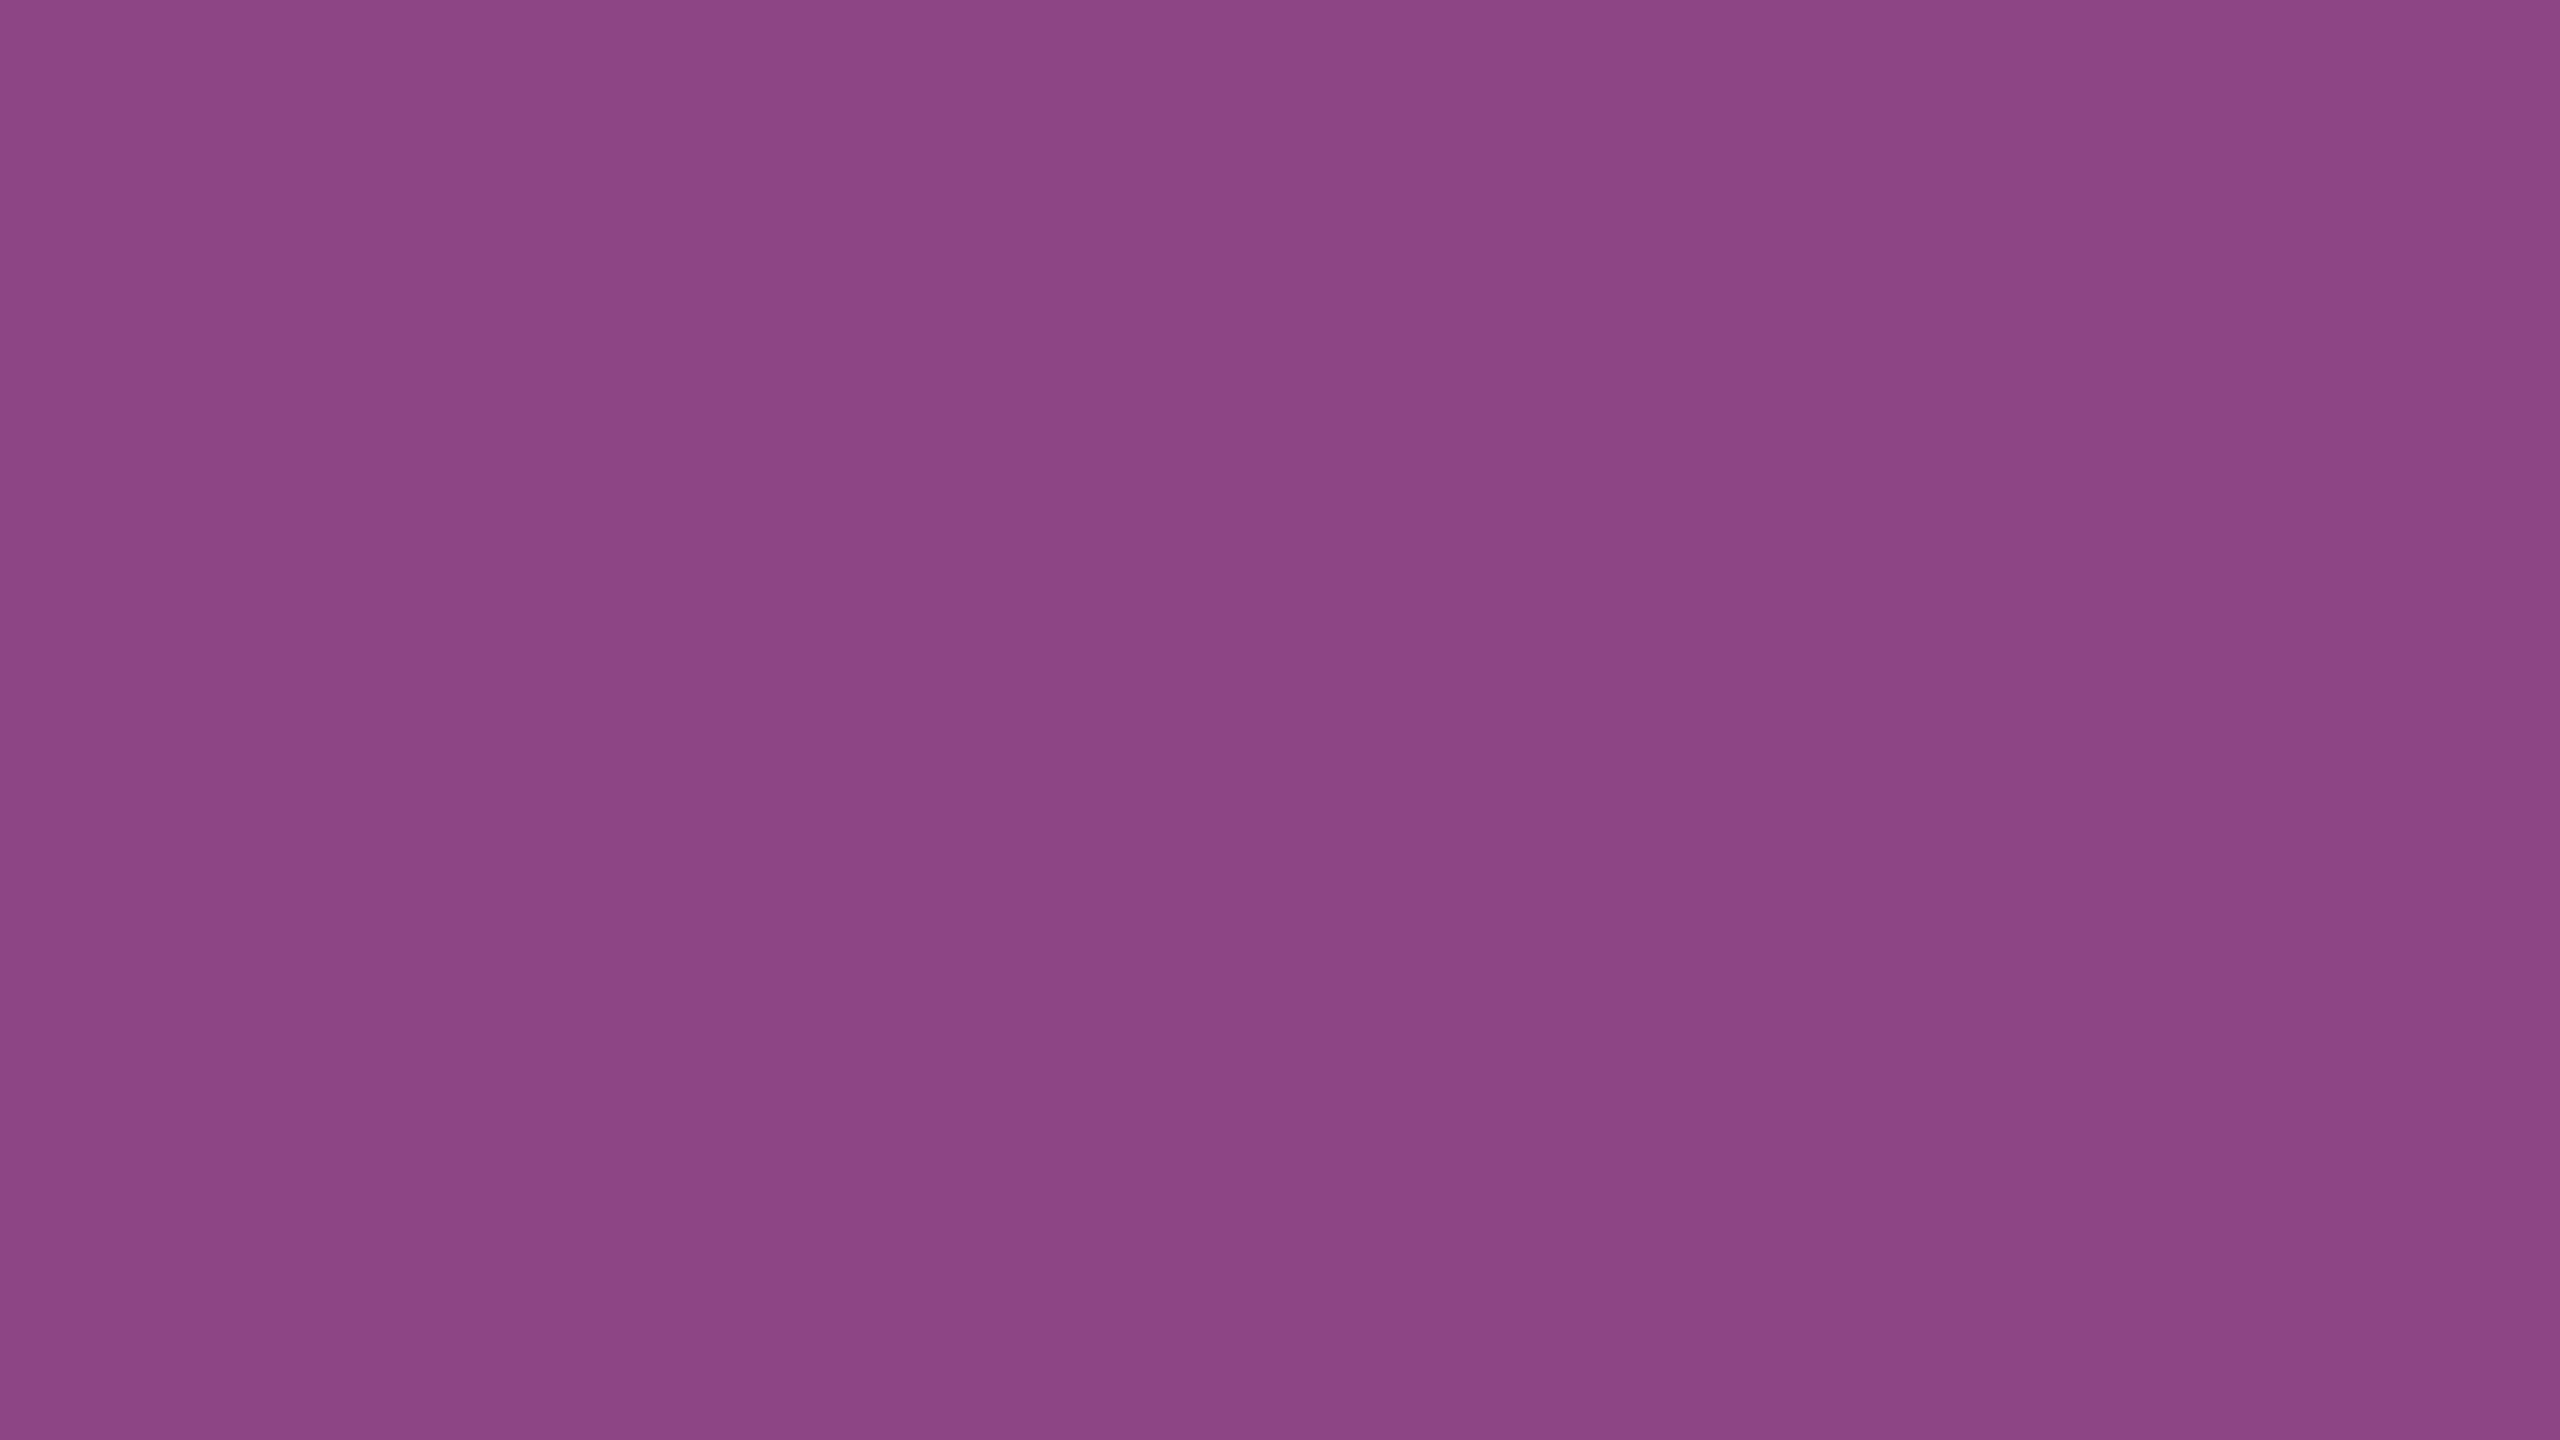 2560x1440 Plum Traditional Solid Color Background